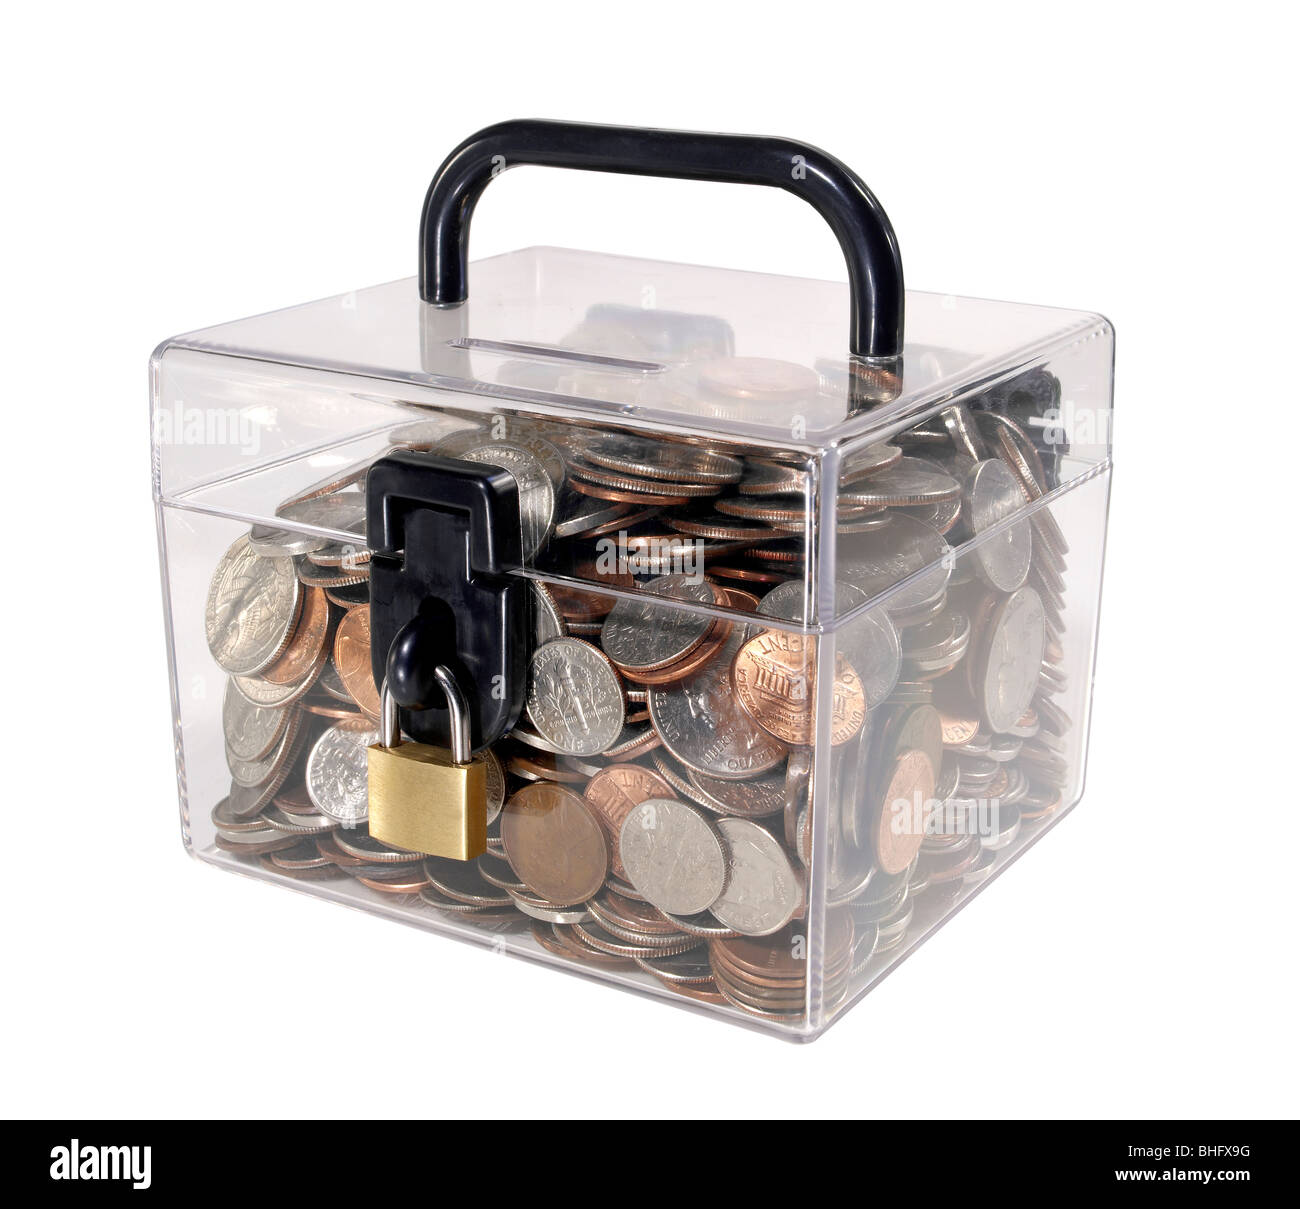 Plastic bank filled with coins - Stock Image